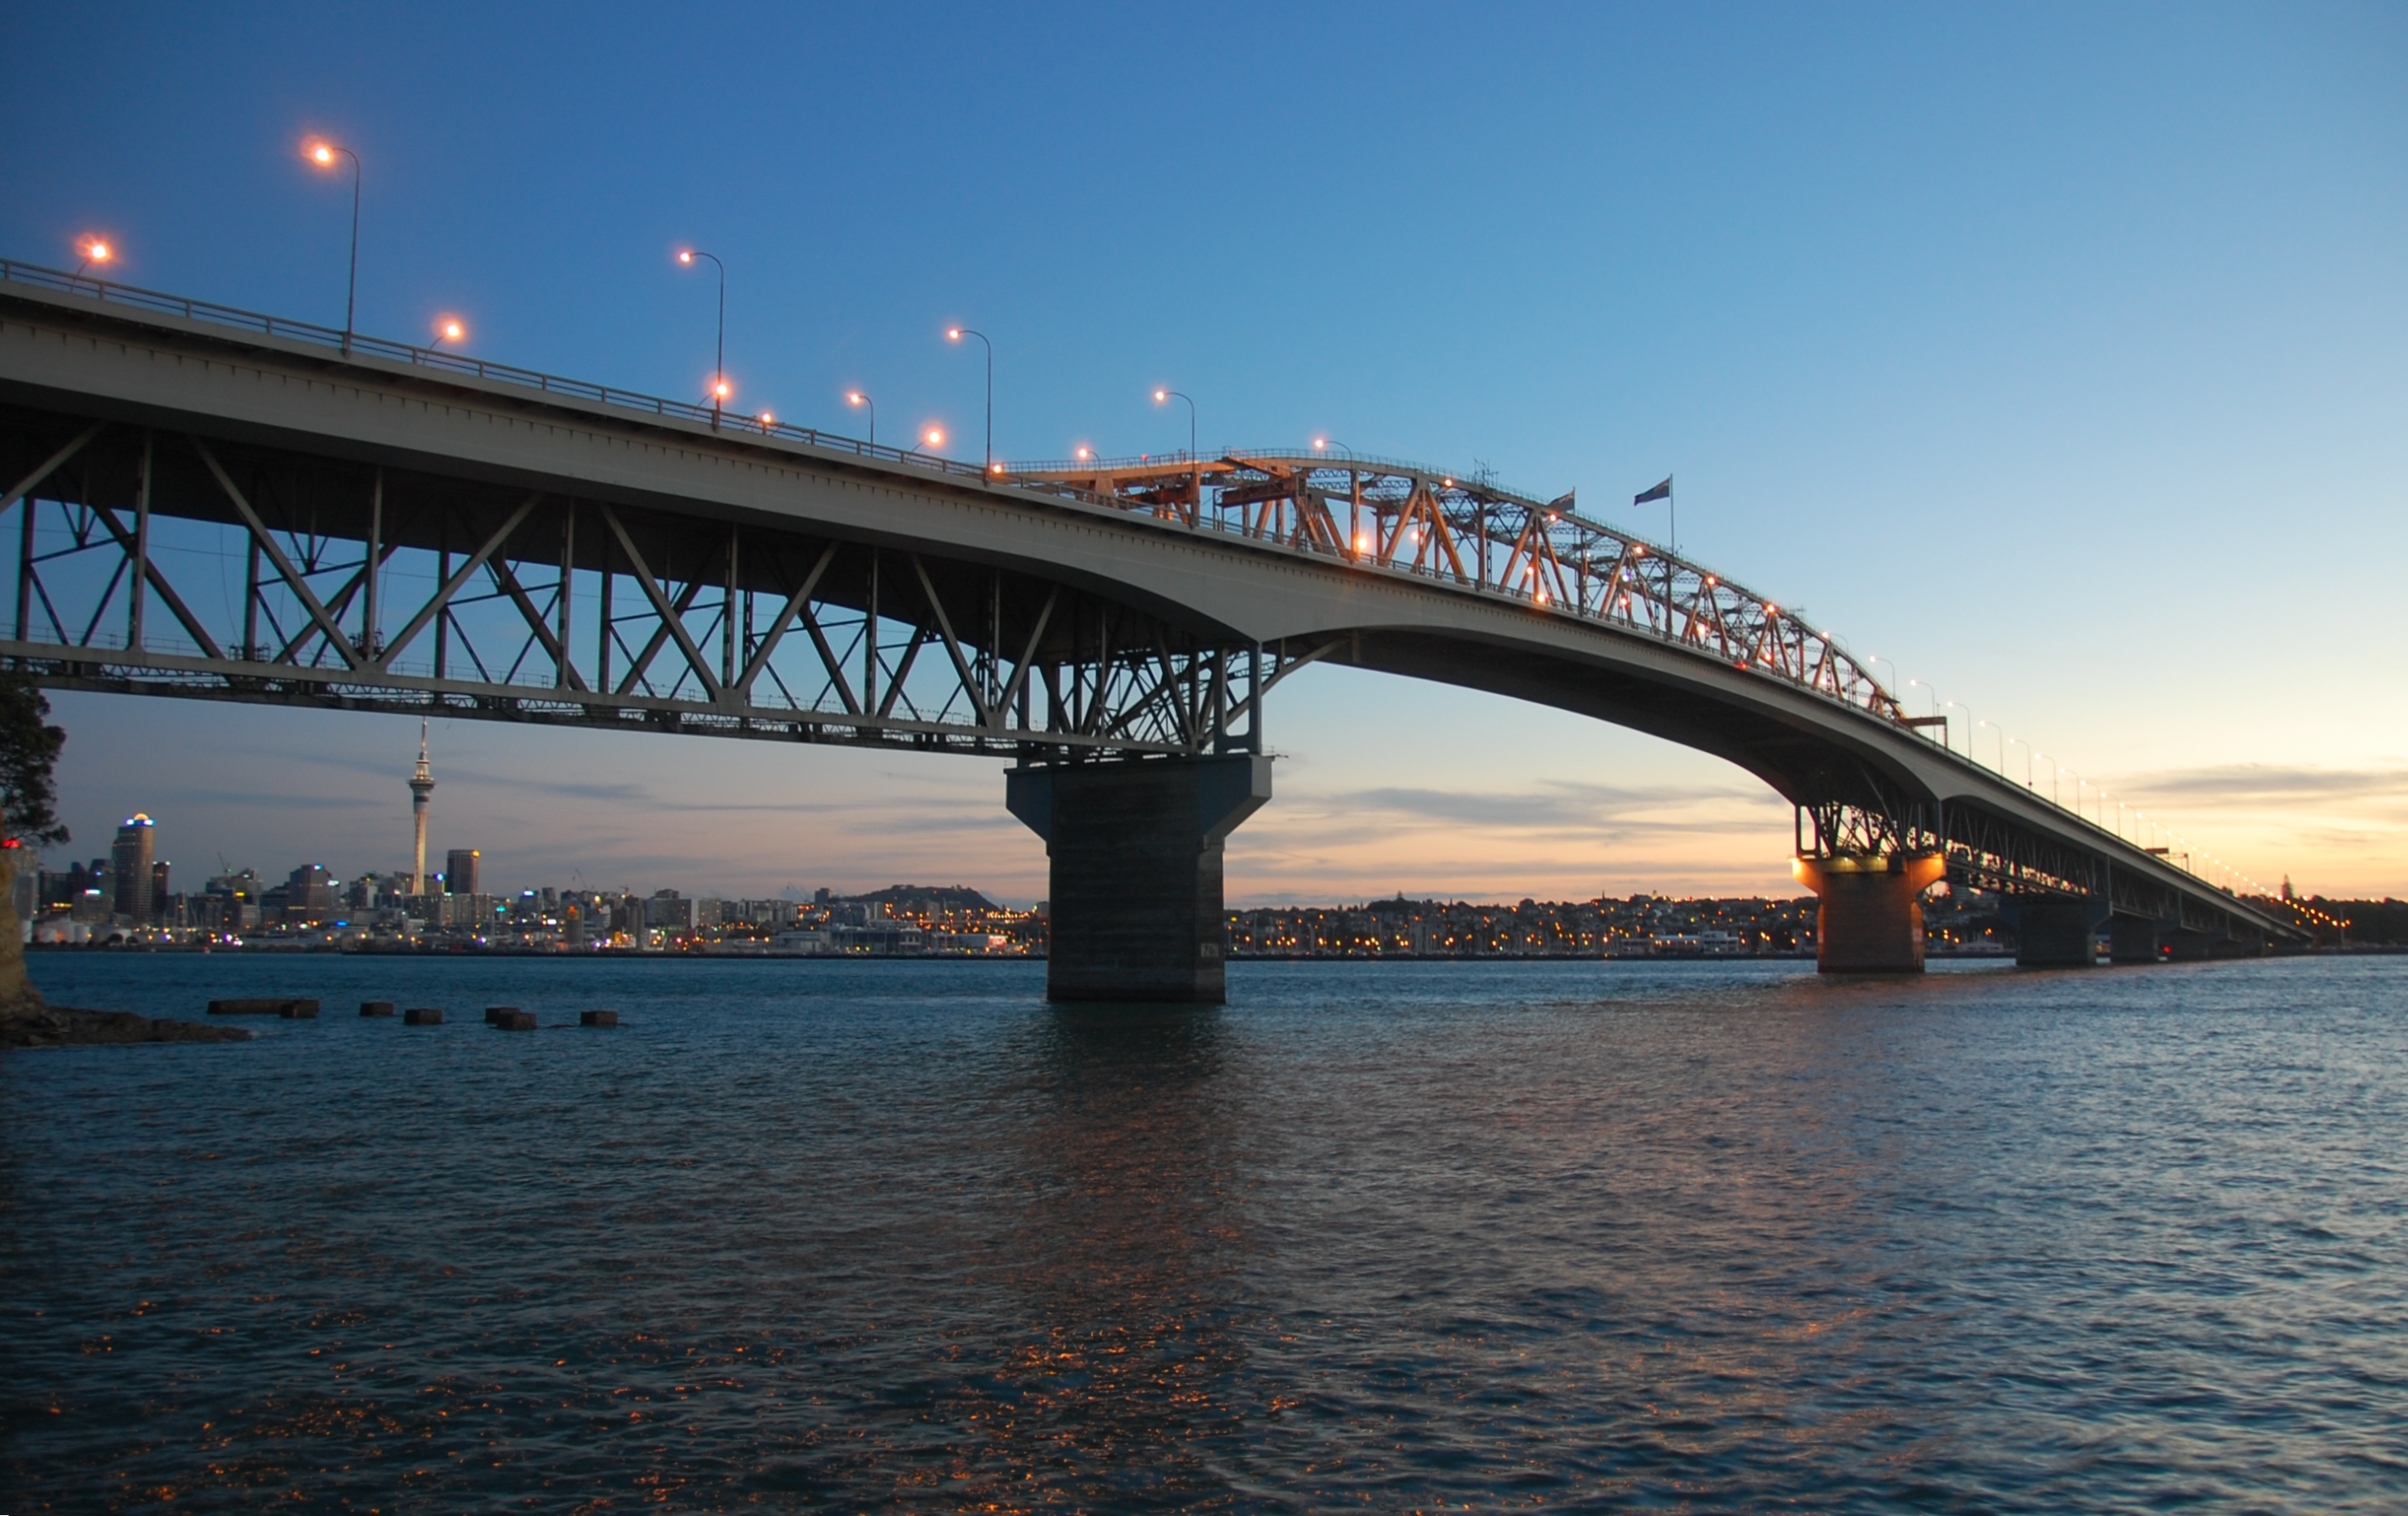 Auckland Harbour Bridge at sunset